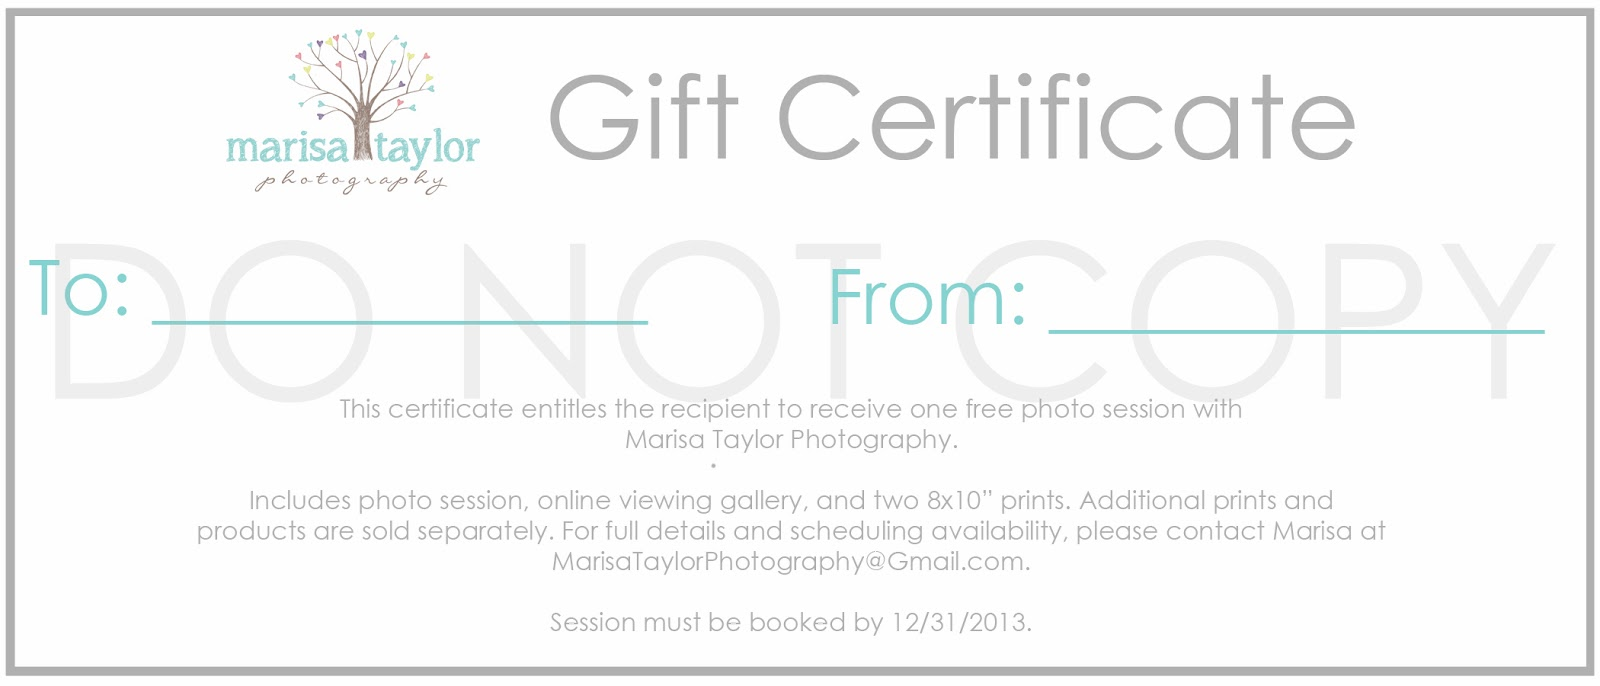 Delaware lifestyle family child photographer marisa taylor what will you get with the gift certificate the basic is the session fee which is valued at 275 and two 8x10 prints included love all around 1betcityfo Gallery